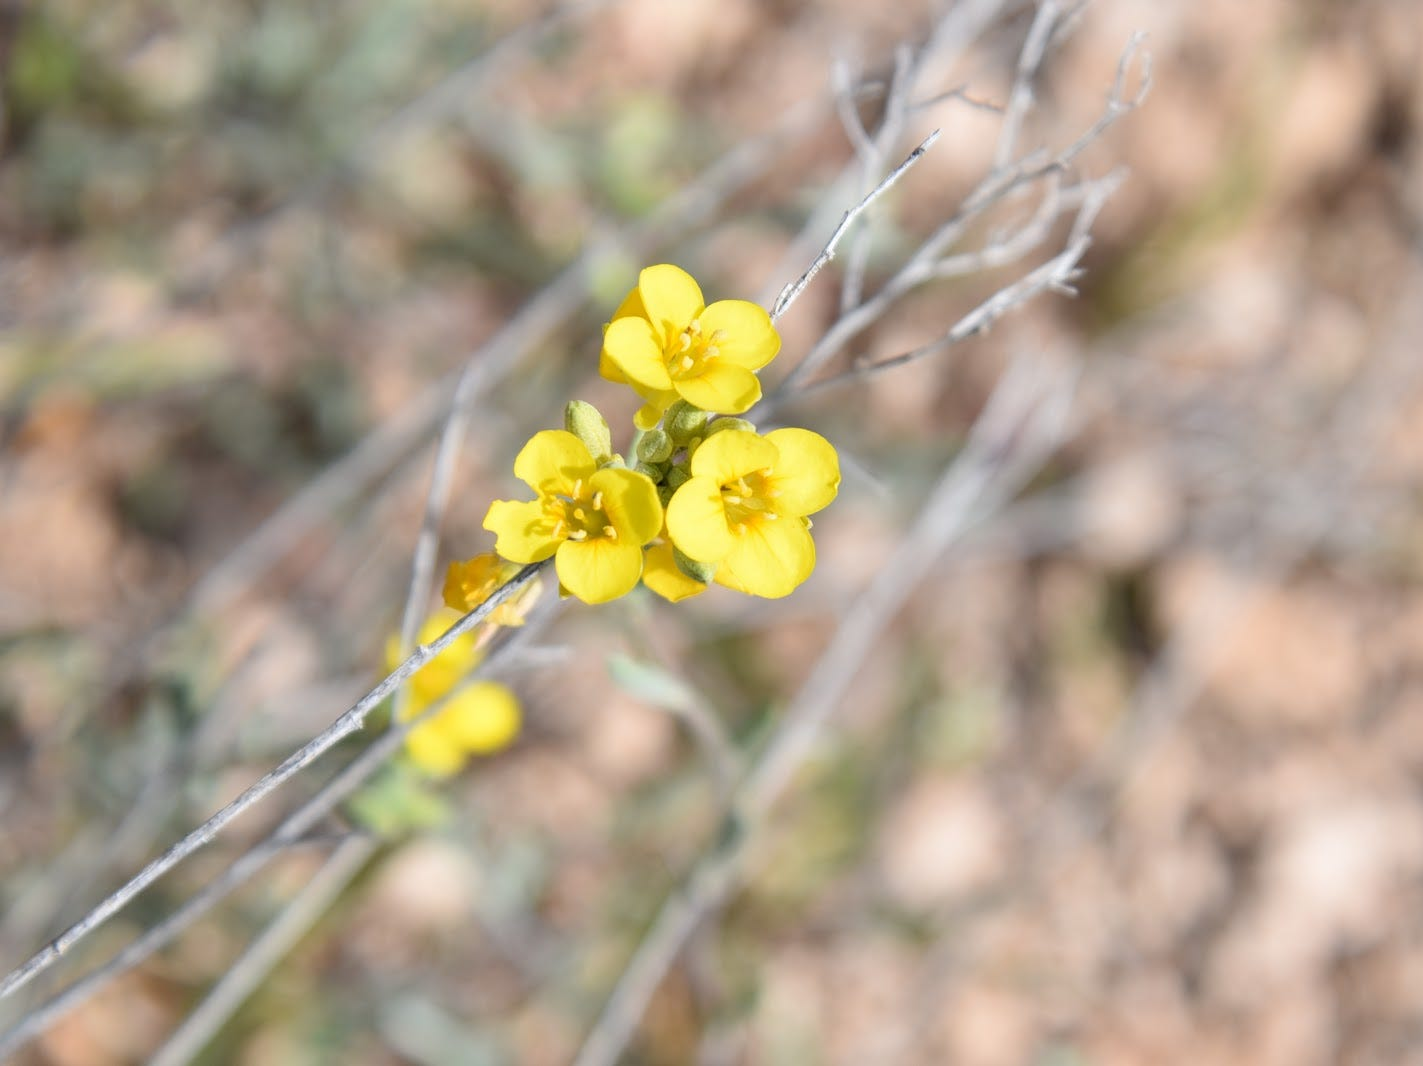 Gordon's bladderpod blooms along the trails.